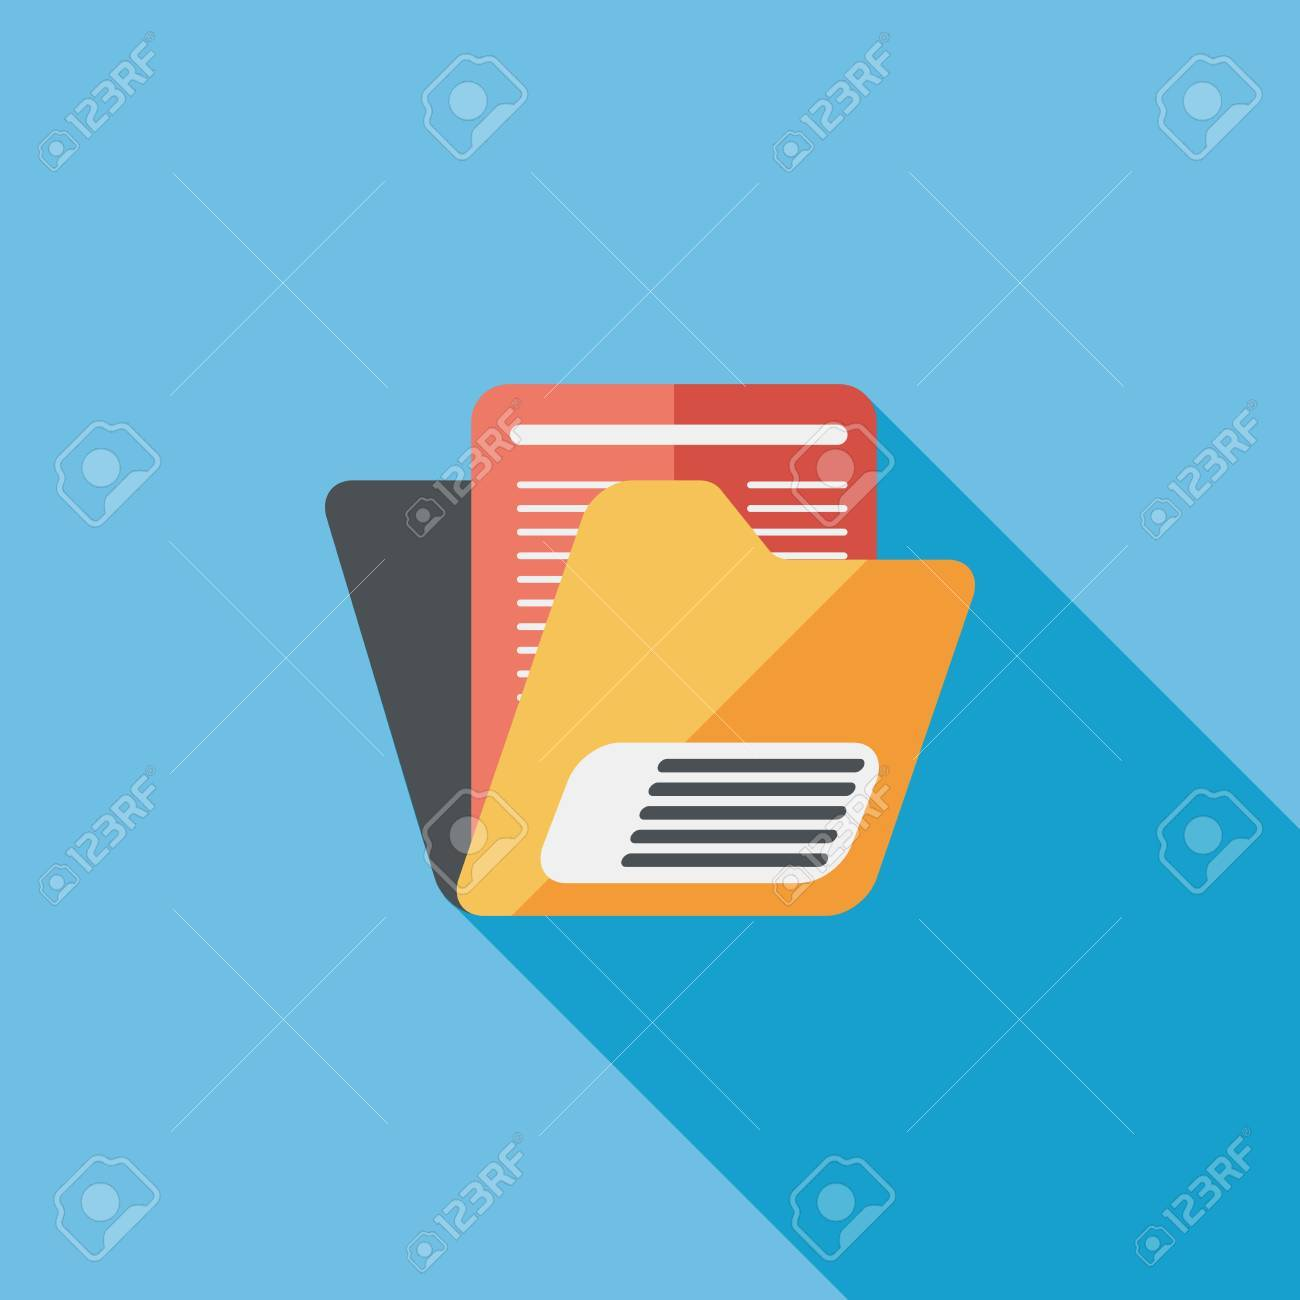 folder flat icon with long shadow - 31016120